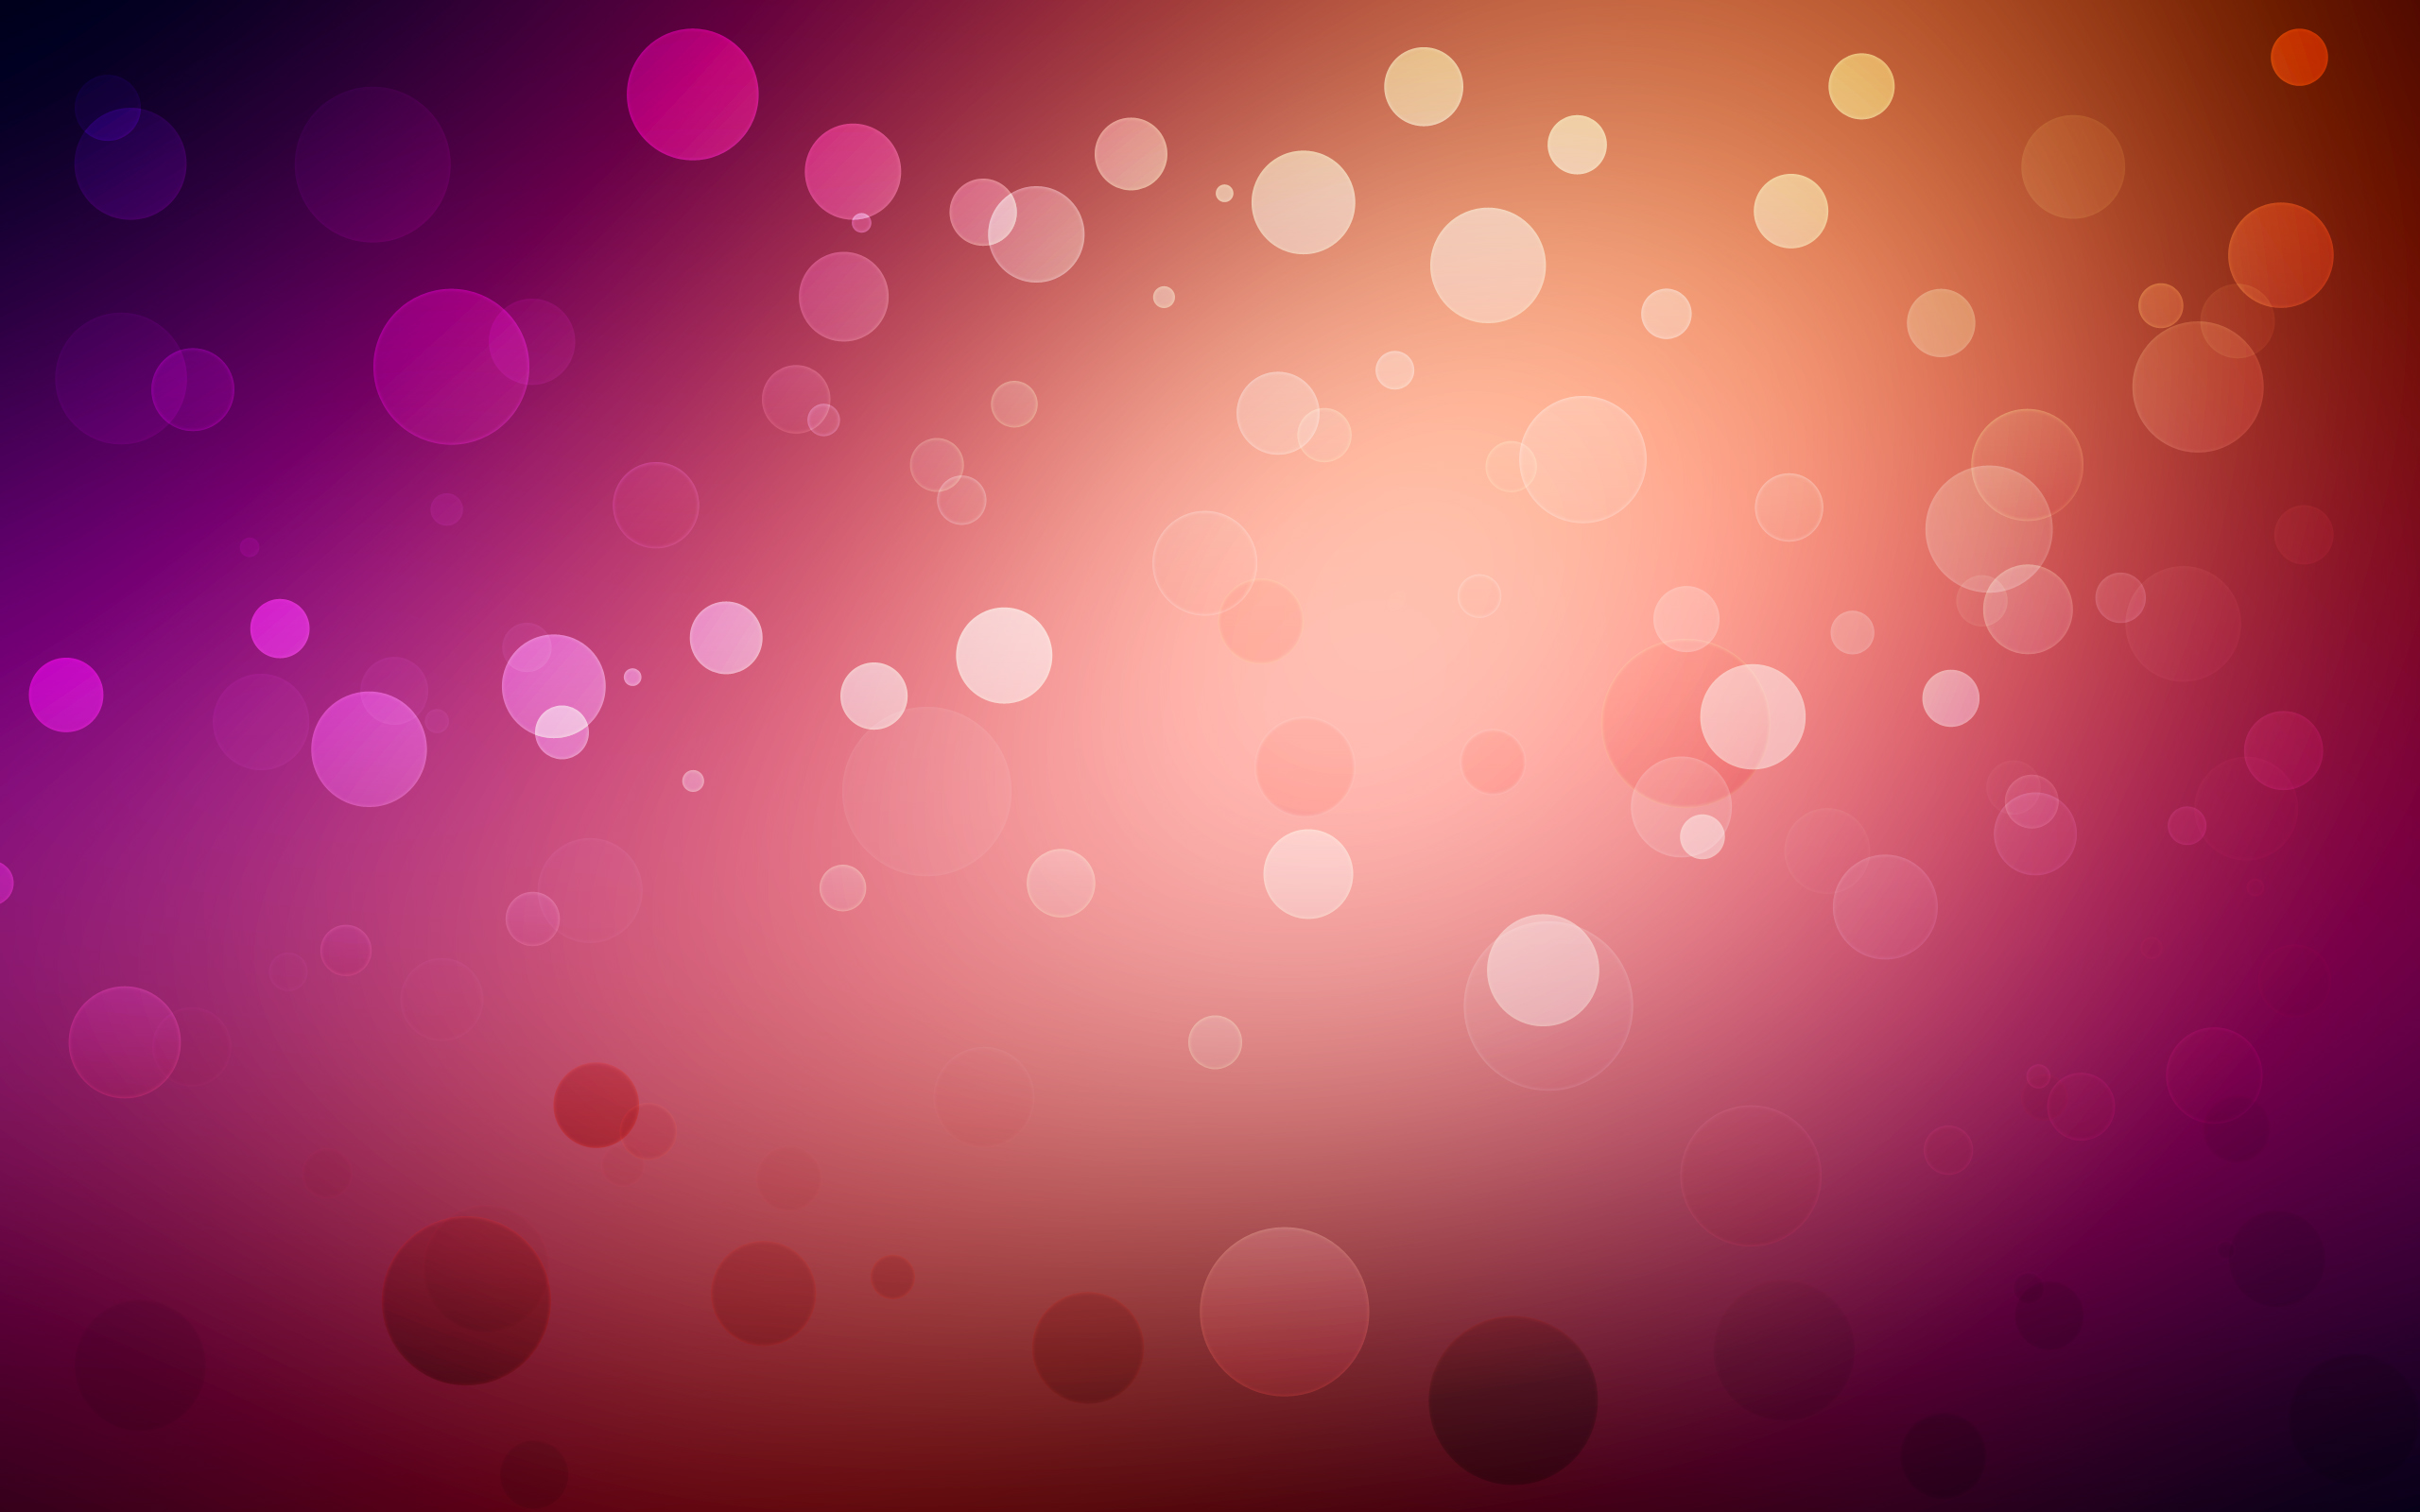 Abstract Purple and Red Dots